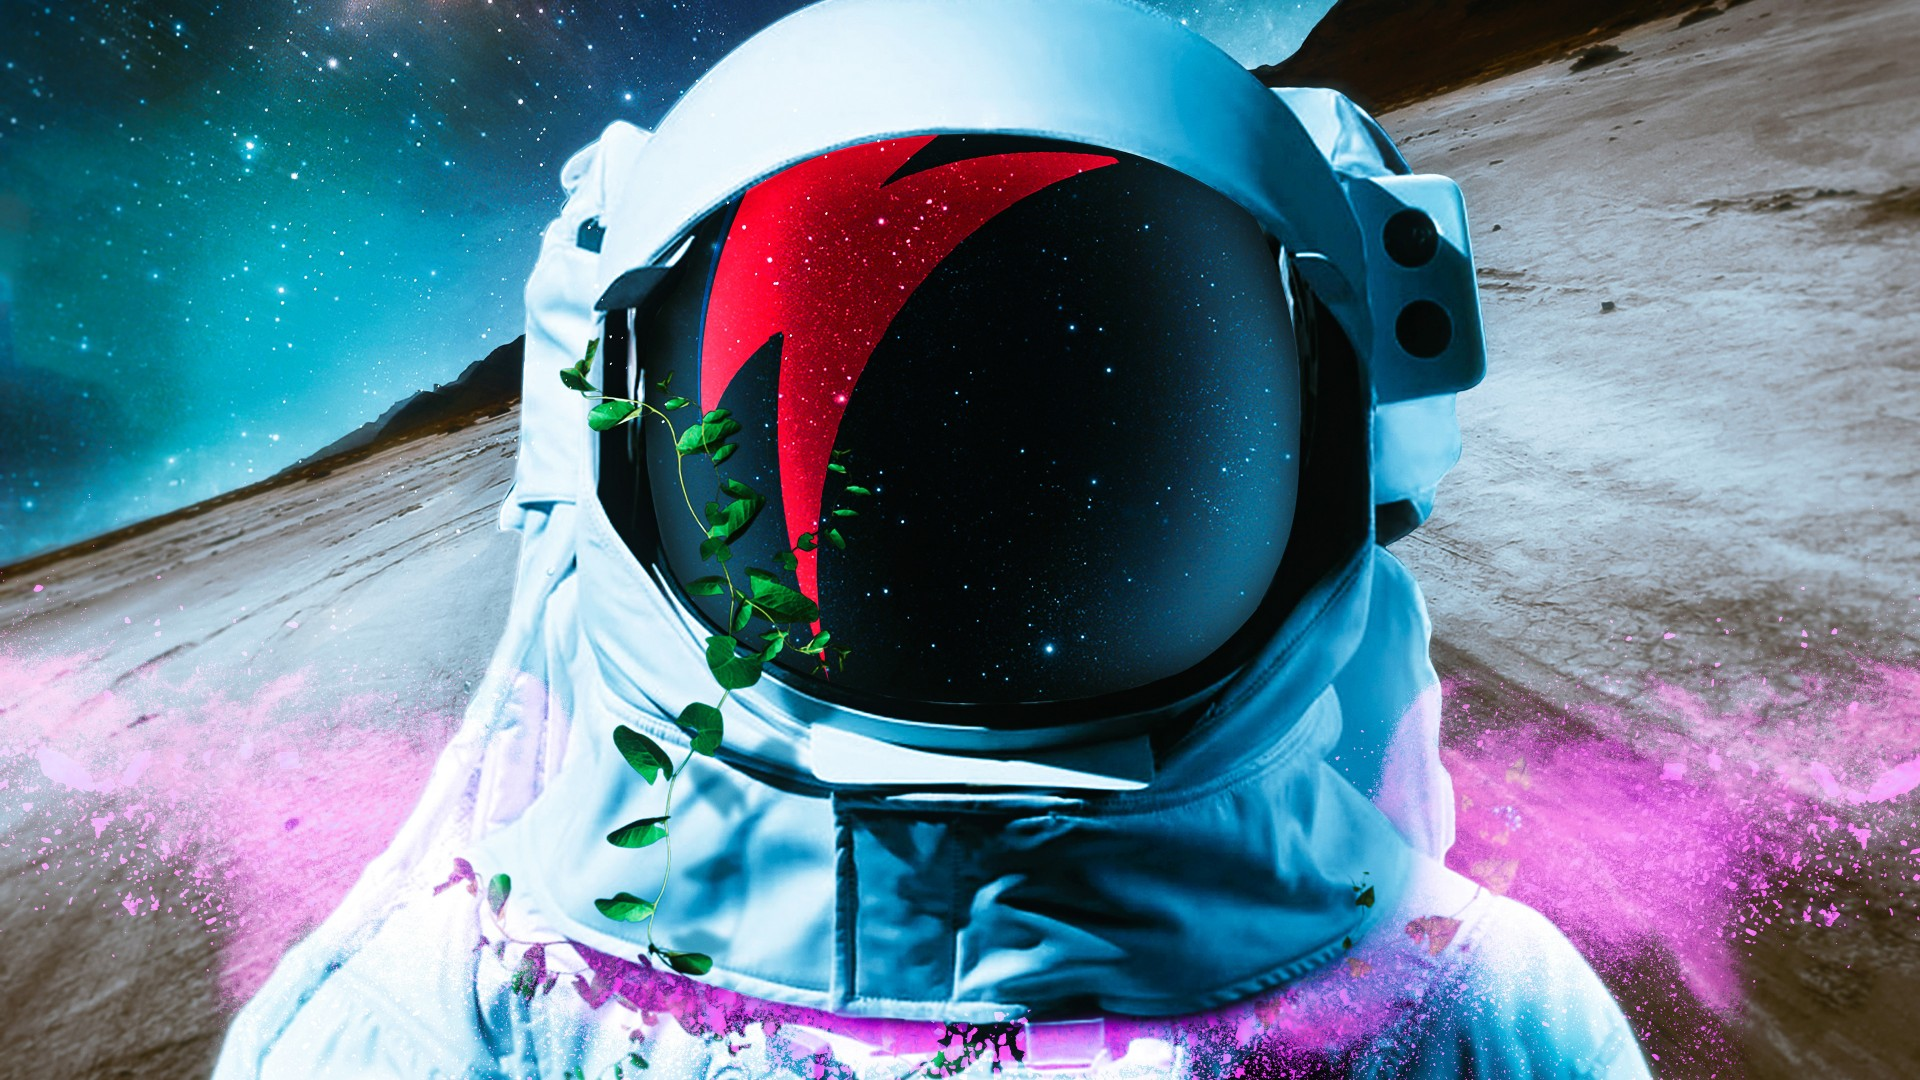 Iphone 5 Hd Wallpaper Abstract Astronaut 5k Wallpapers Hd Wallpapers Id 22844